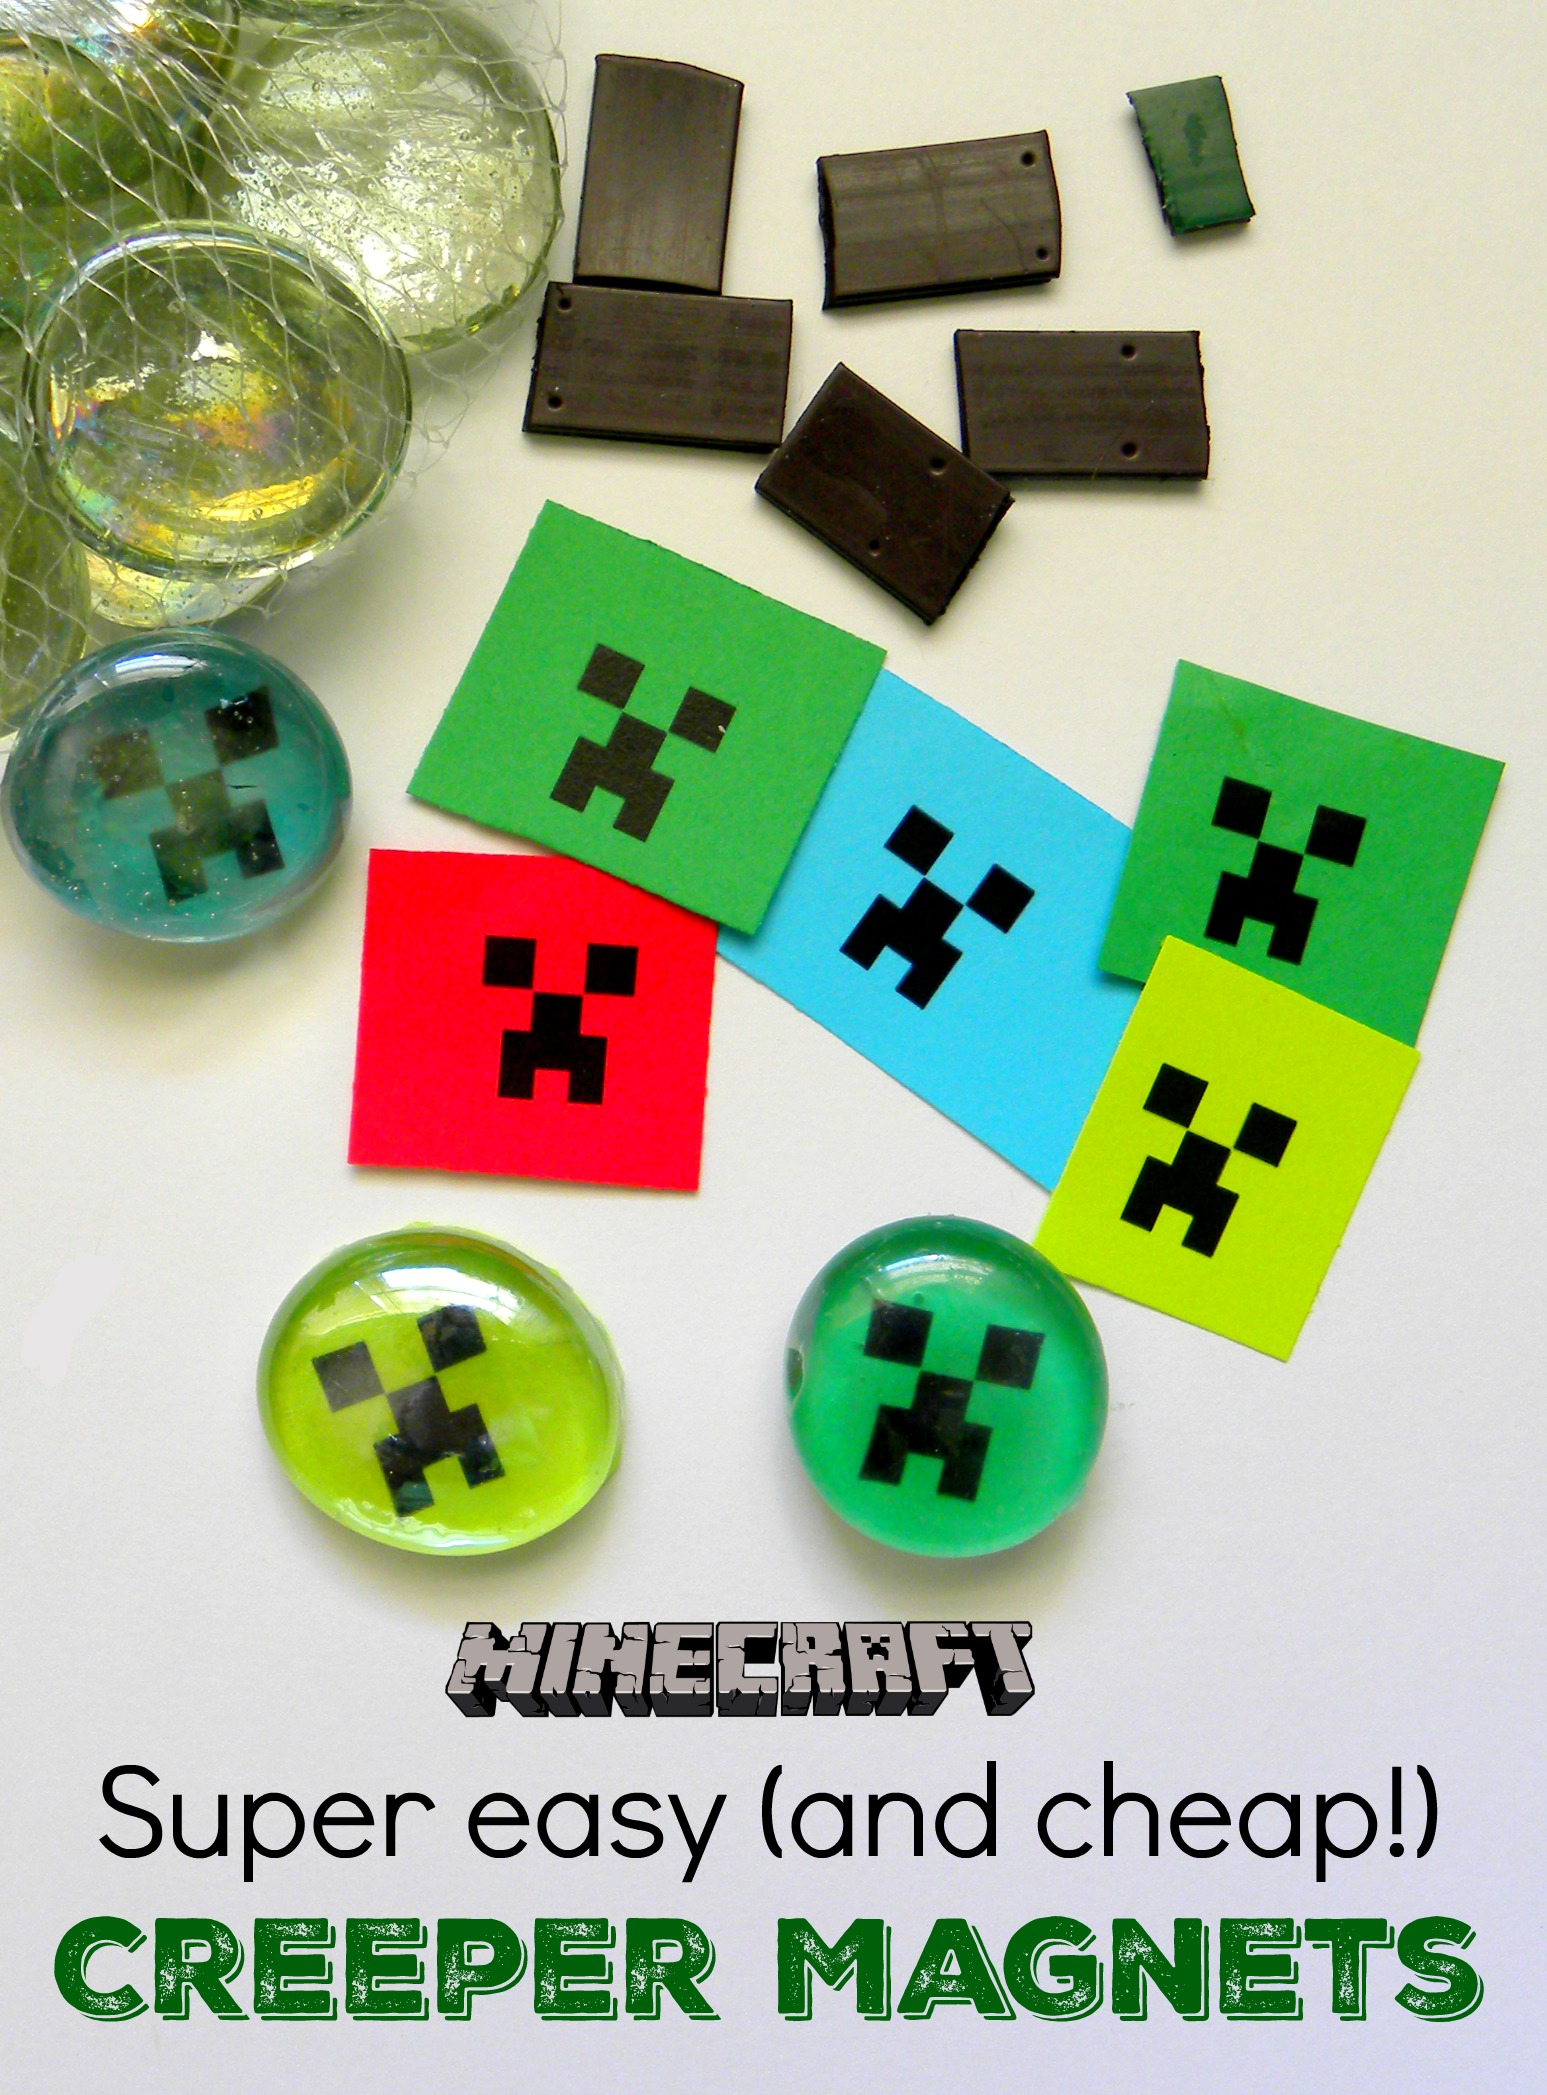 Minecraft madness crafts for parties classrooms or libraries minecraft magnets great party favor or craft solutioingenieria